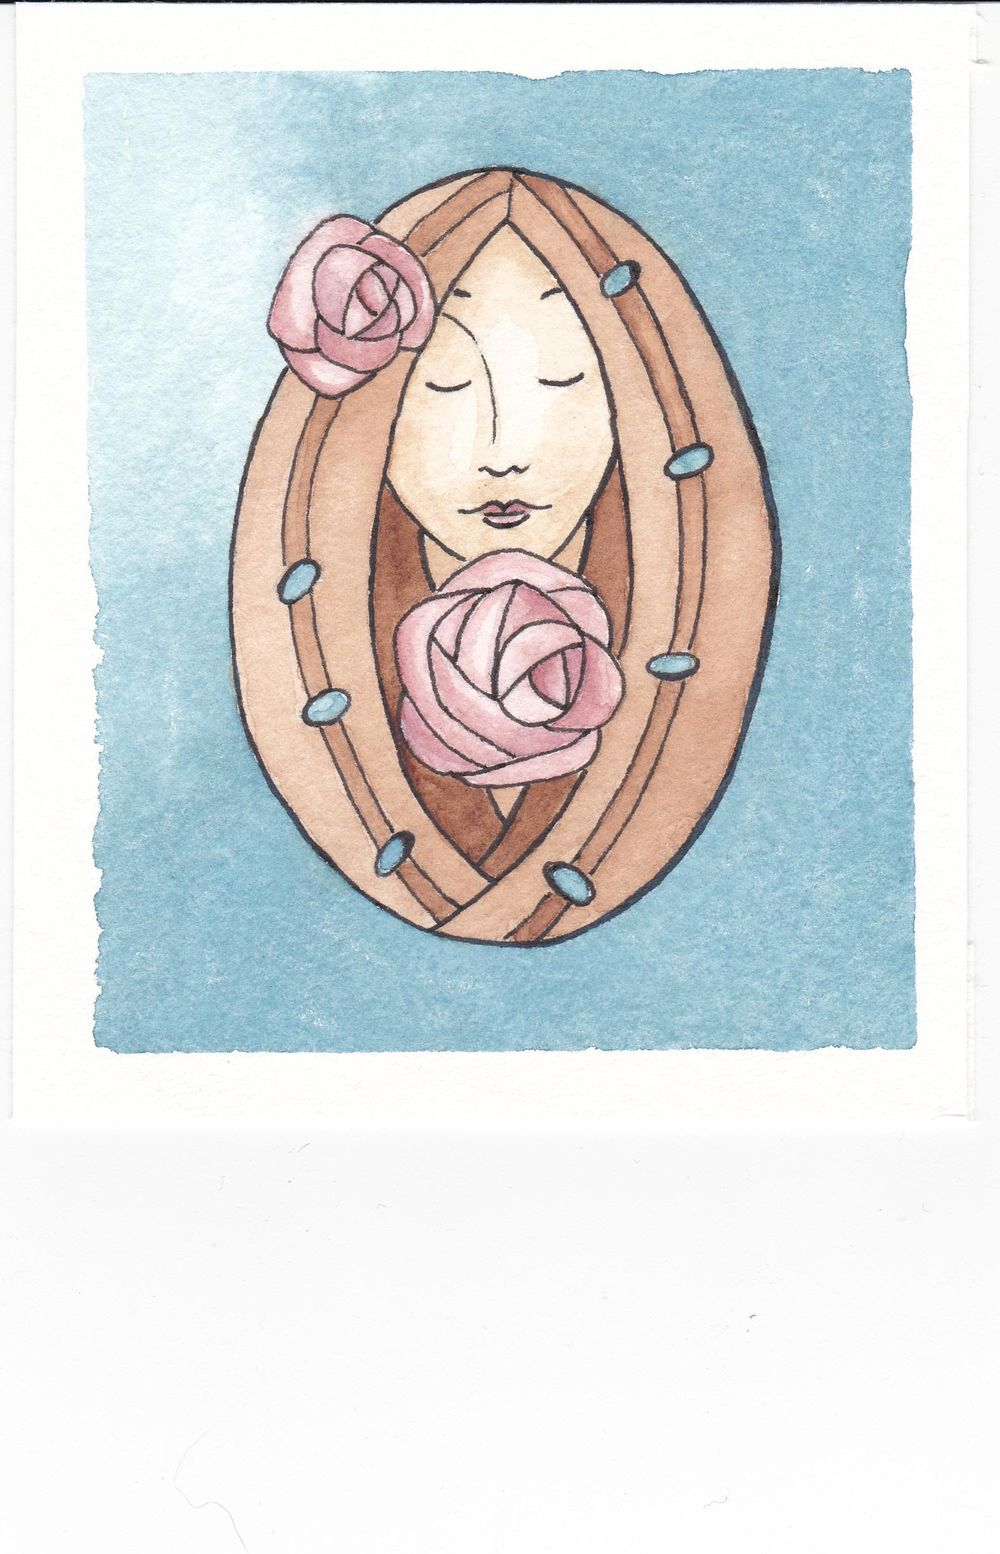 Glasgow Rose Girl - image 2 - student project